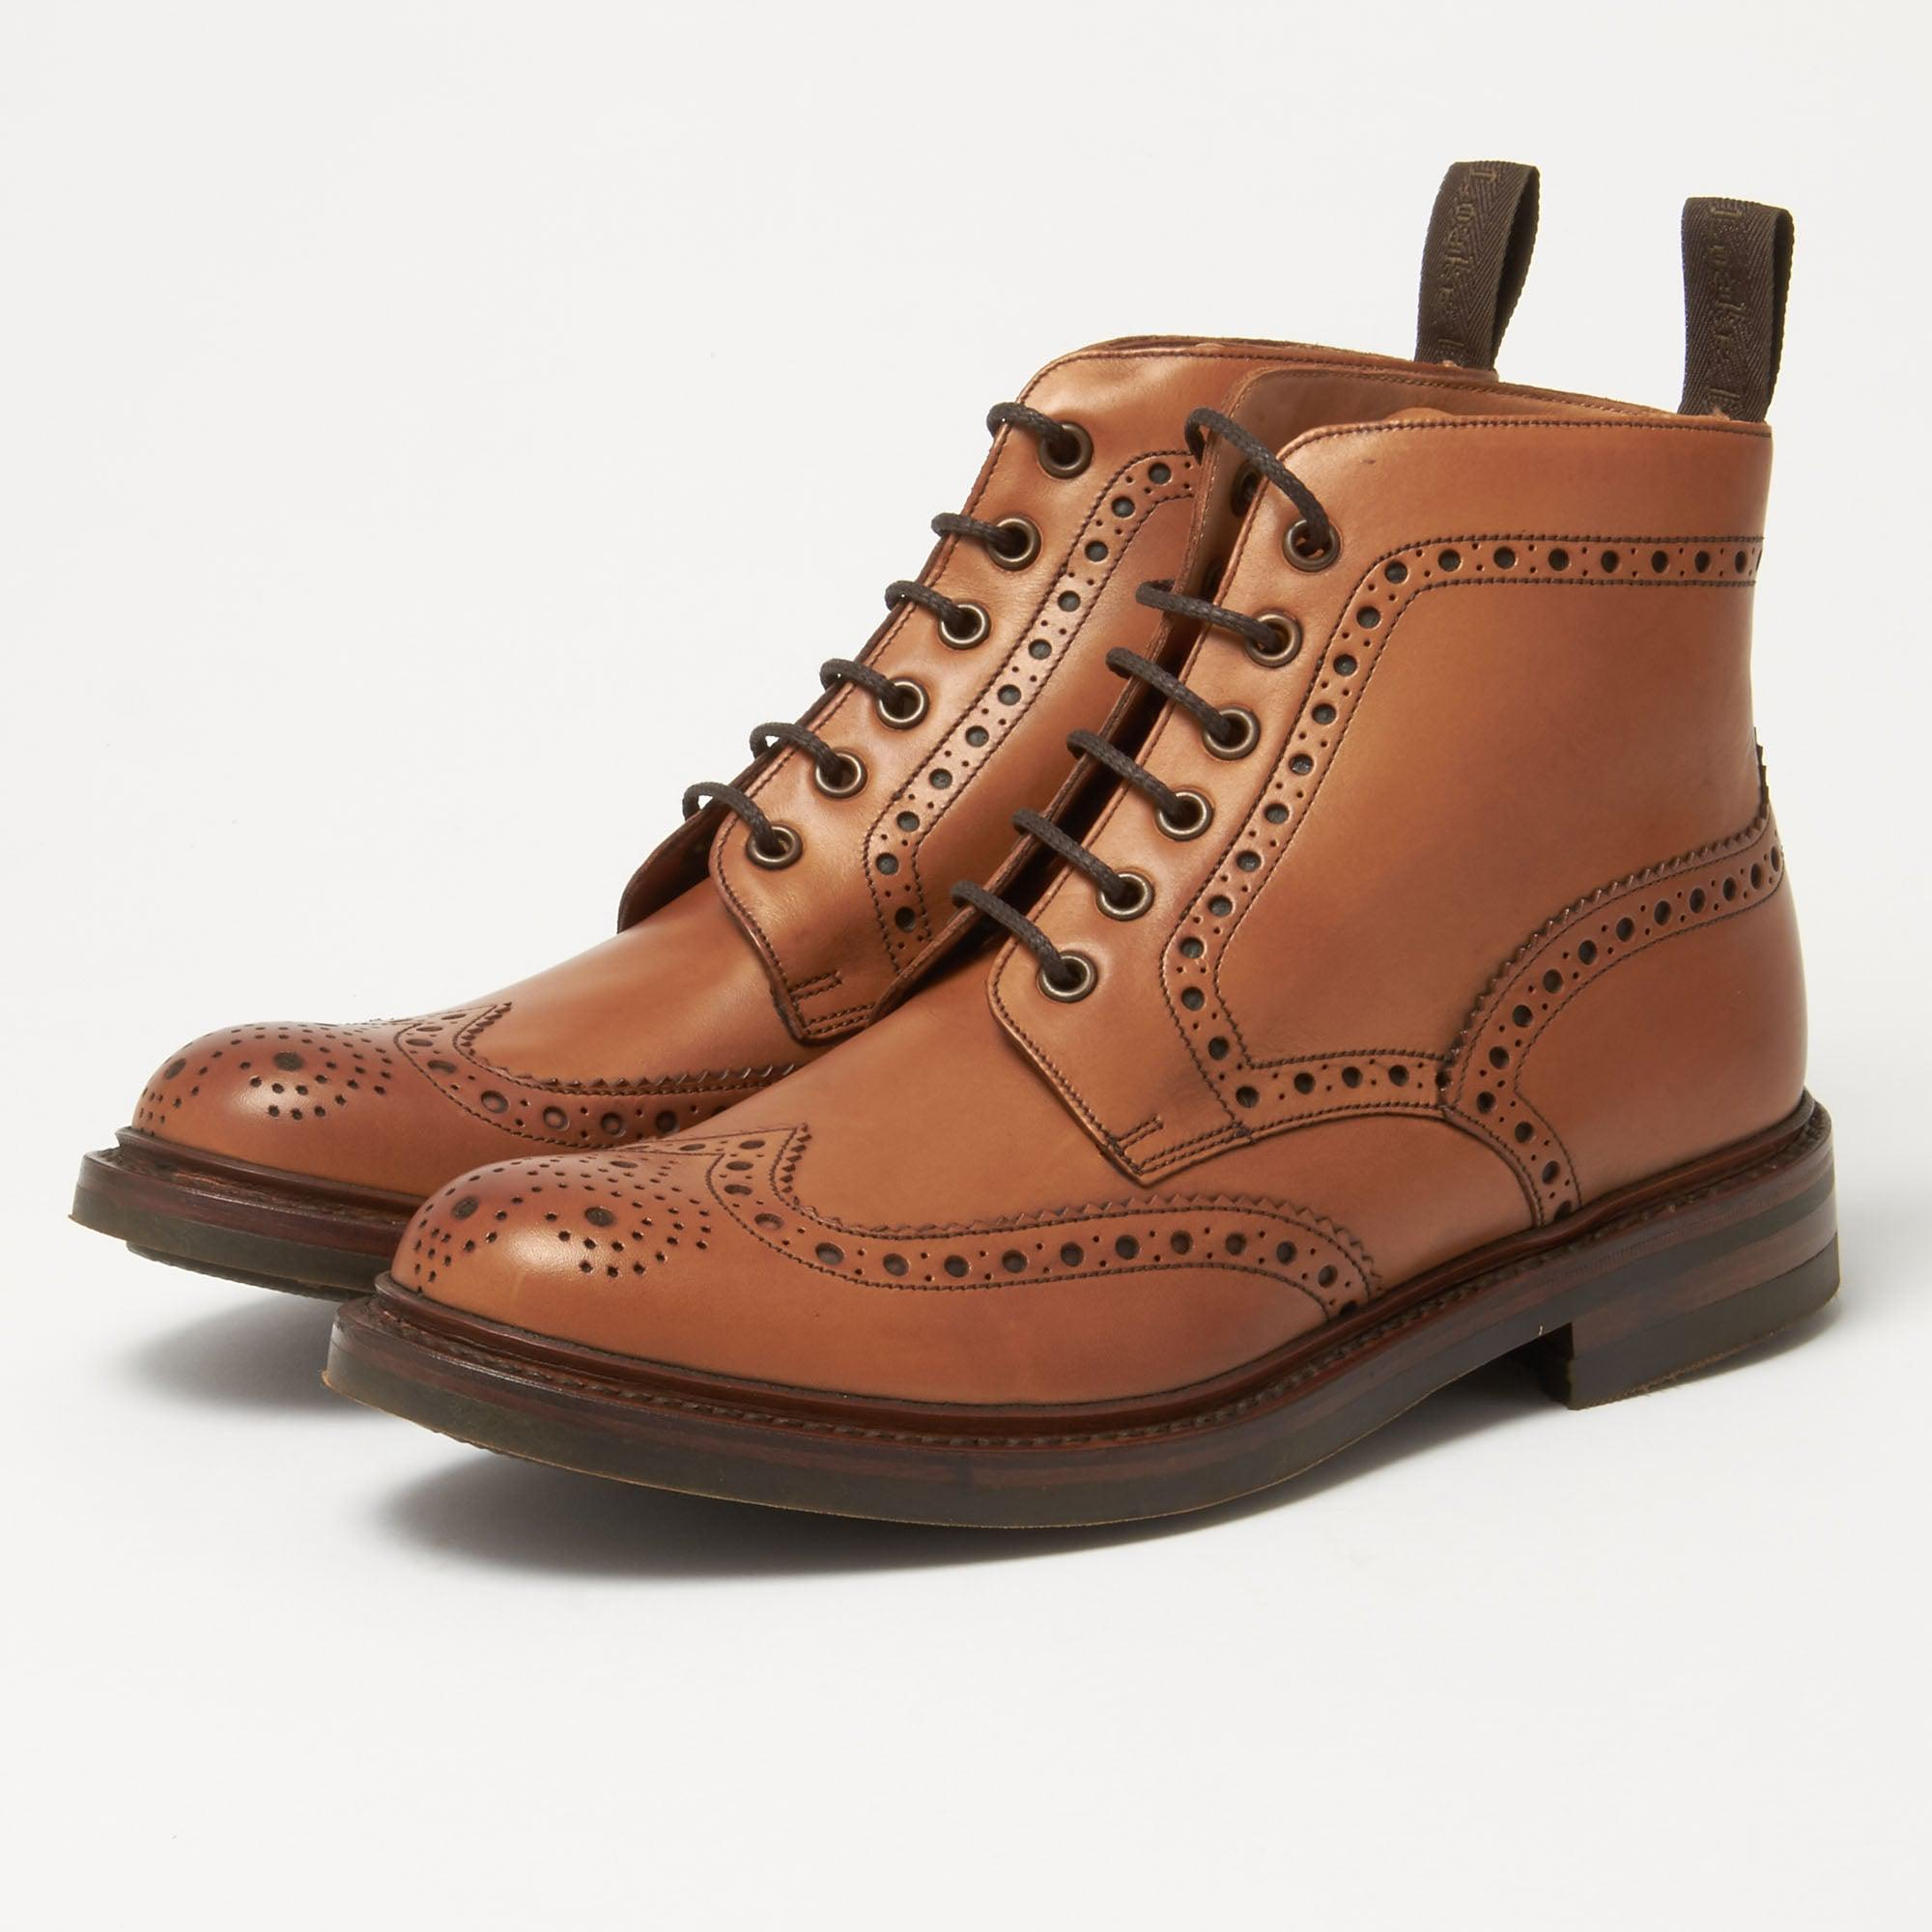 Sharp - Shop our mens brogue boots in dark brown handpainted leather with a rubber dainite sole. Sharp is a fully lined English brogue with a double sole. Free worldwide returns.